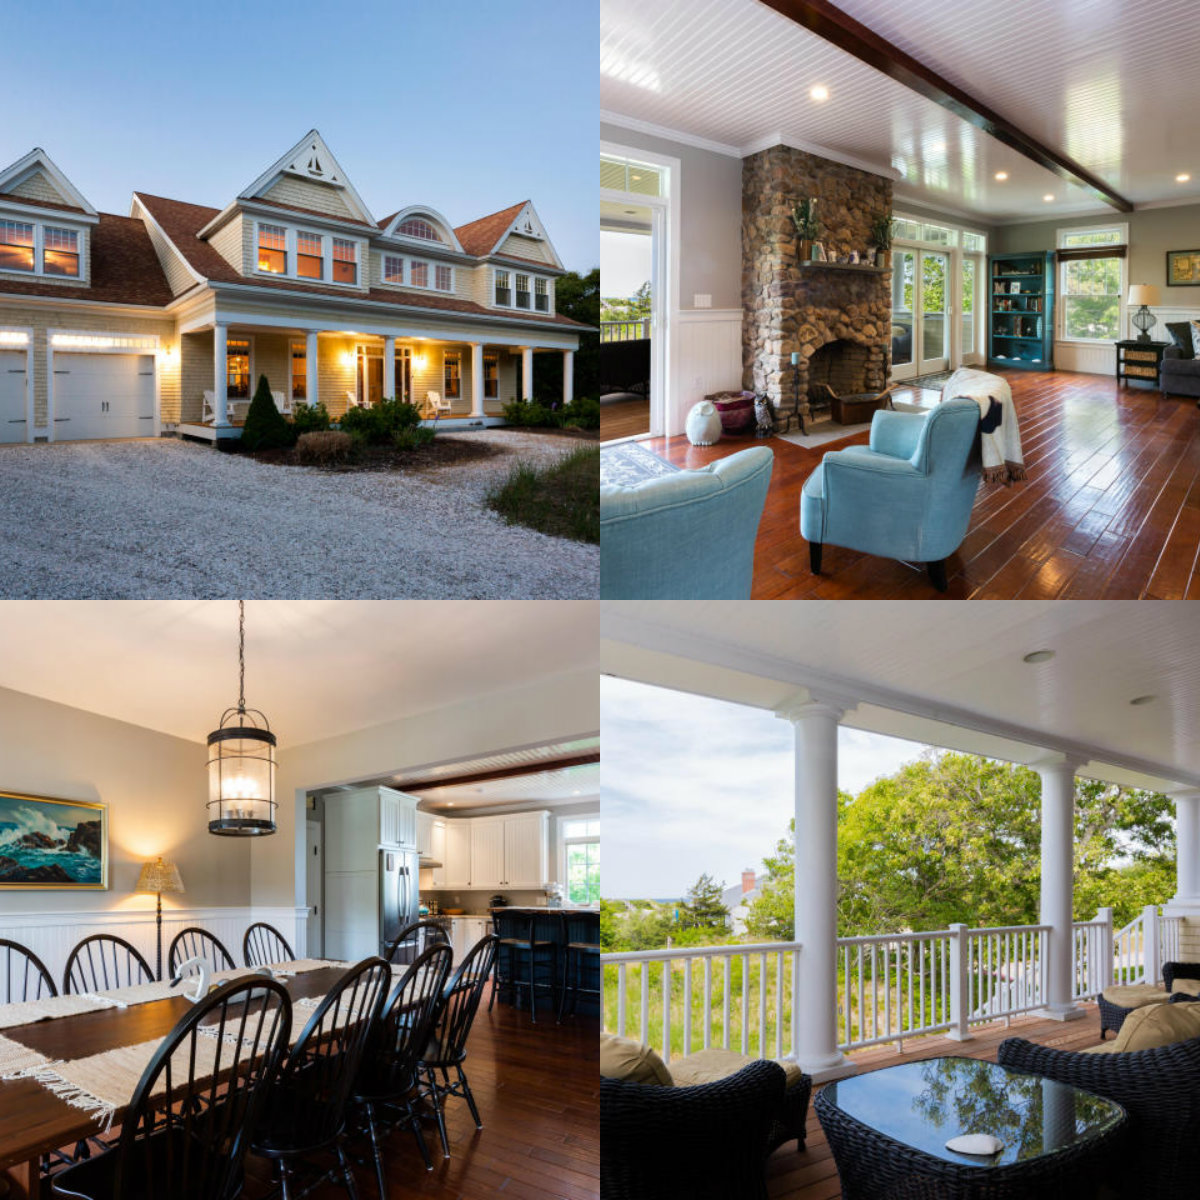 Images of 2 Maple Place by Sandy Neck on Cape Cod MA